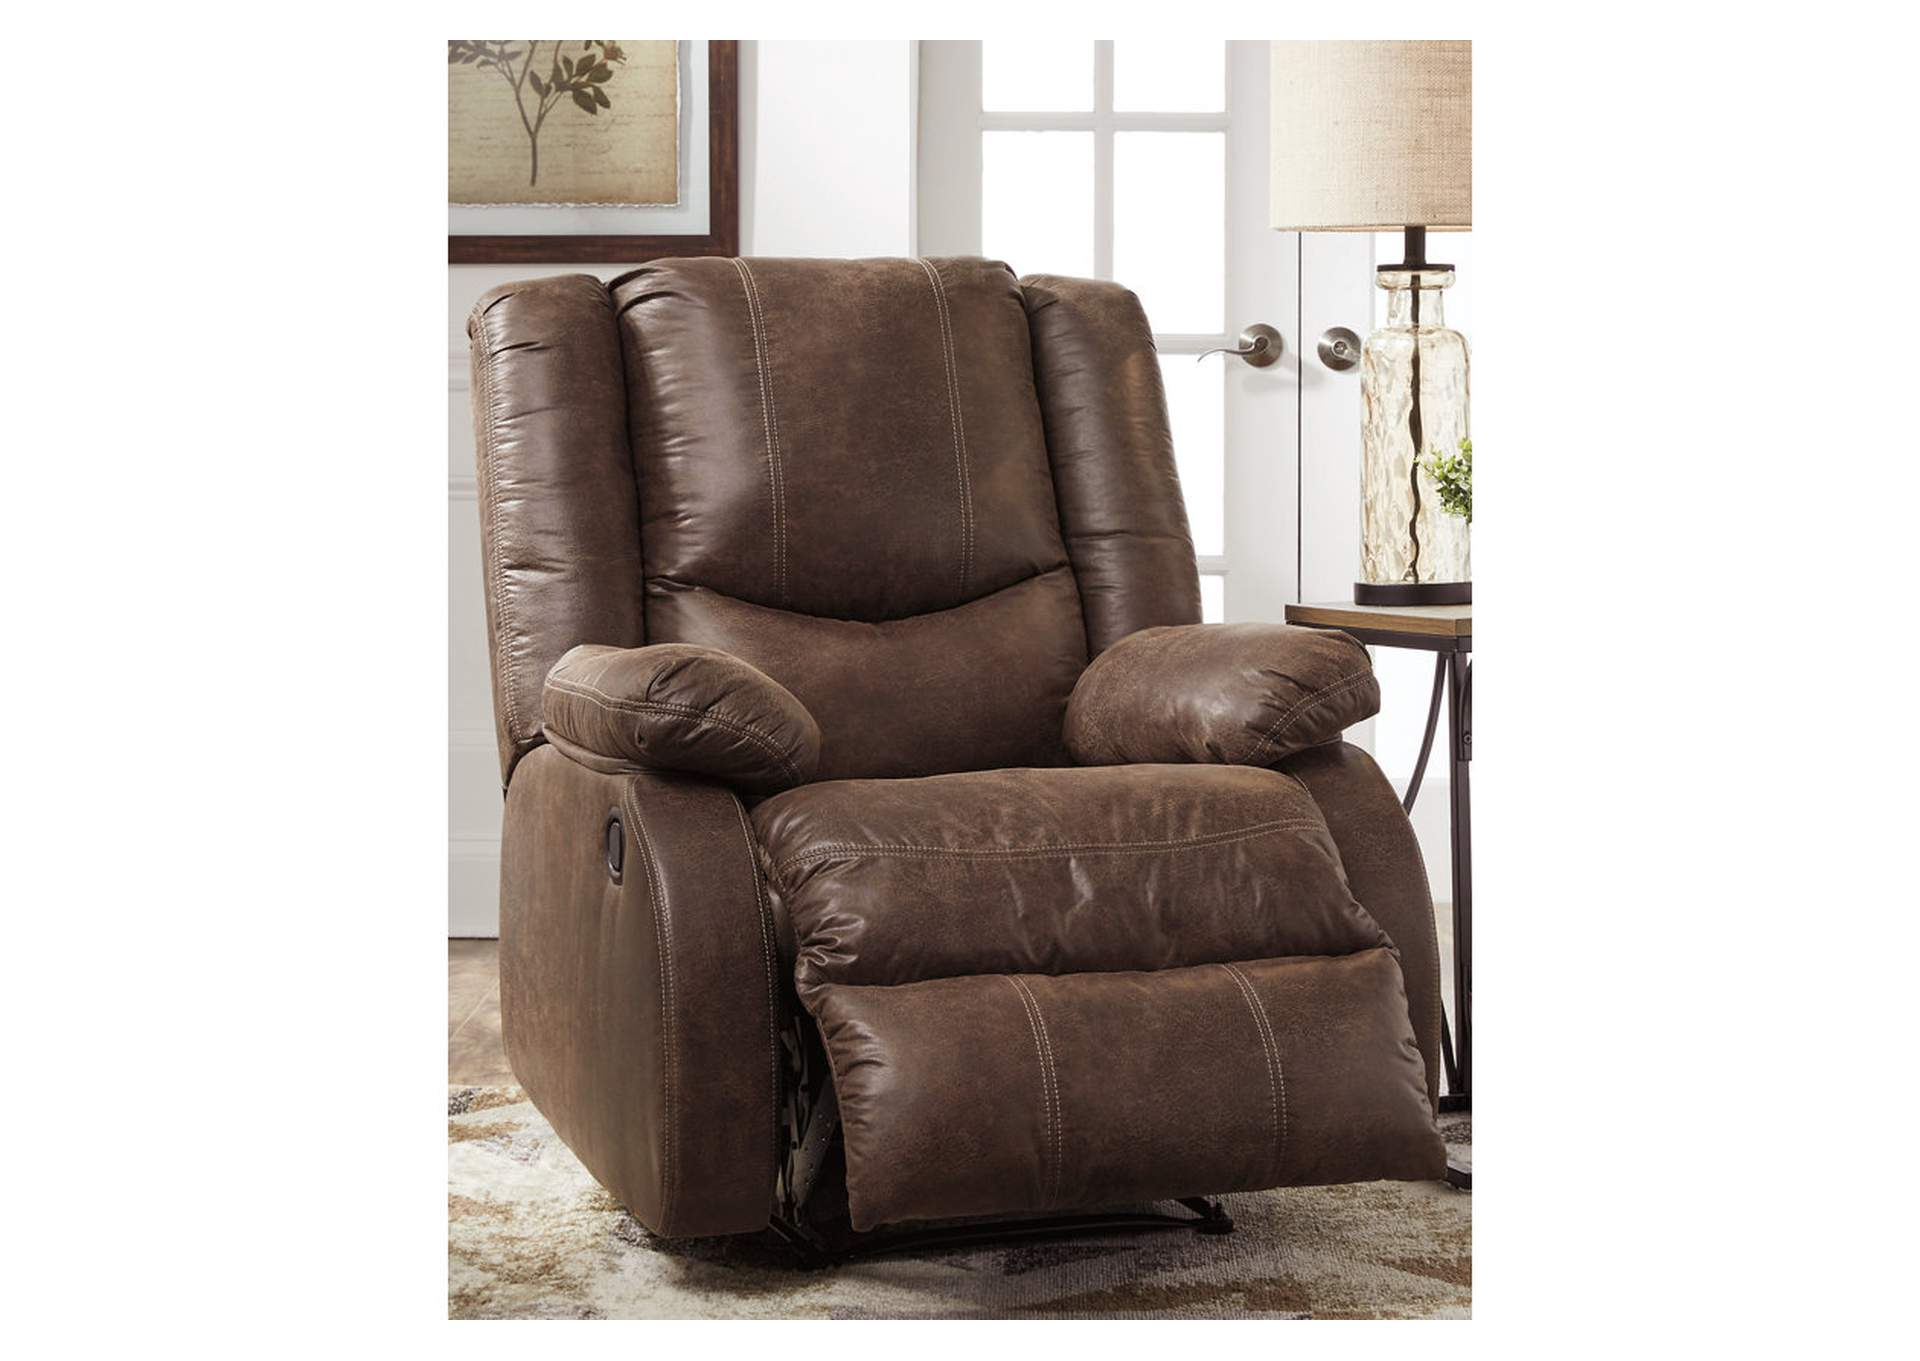 Bladewood Coffee Recliner,Signature Design By Ashley